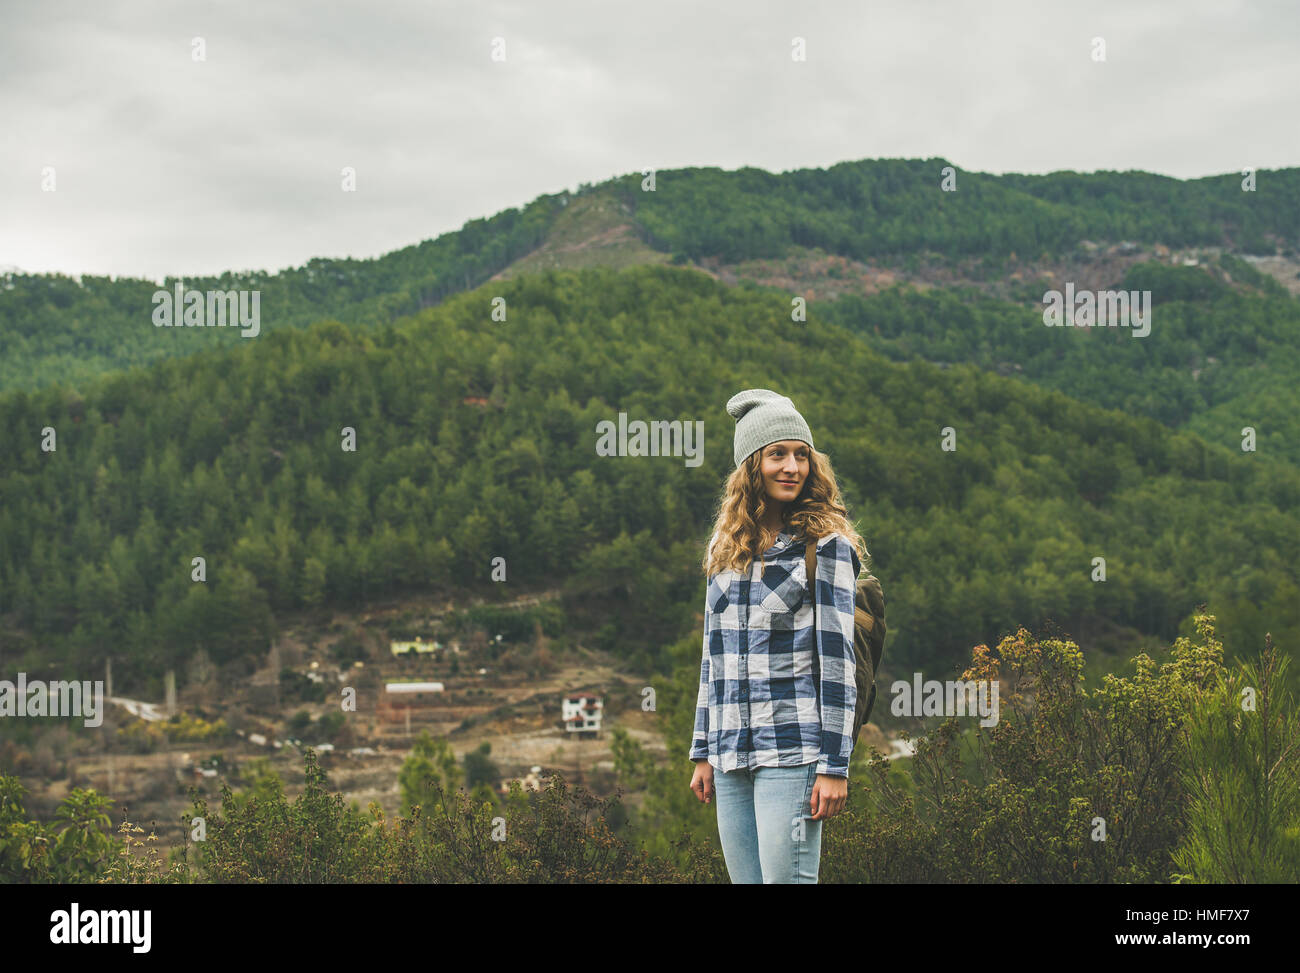 Young woman traveler in chekered shirt hiking in the mountains, Dim Cay district of Alanya, Antalya province, Mediterranean - Stock Image